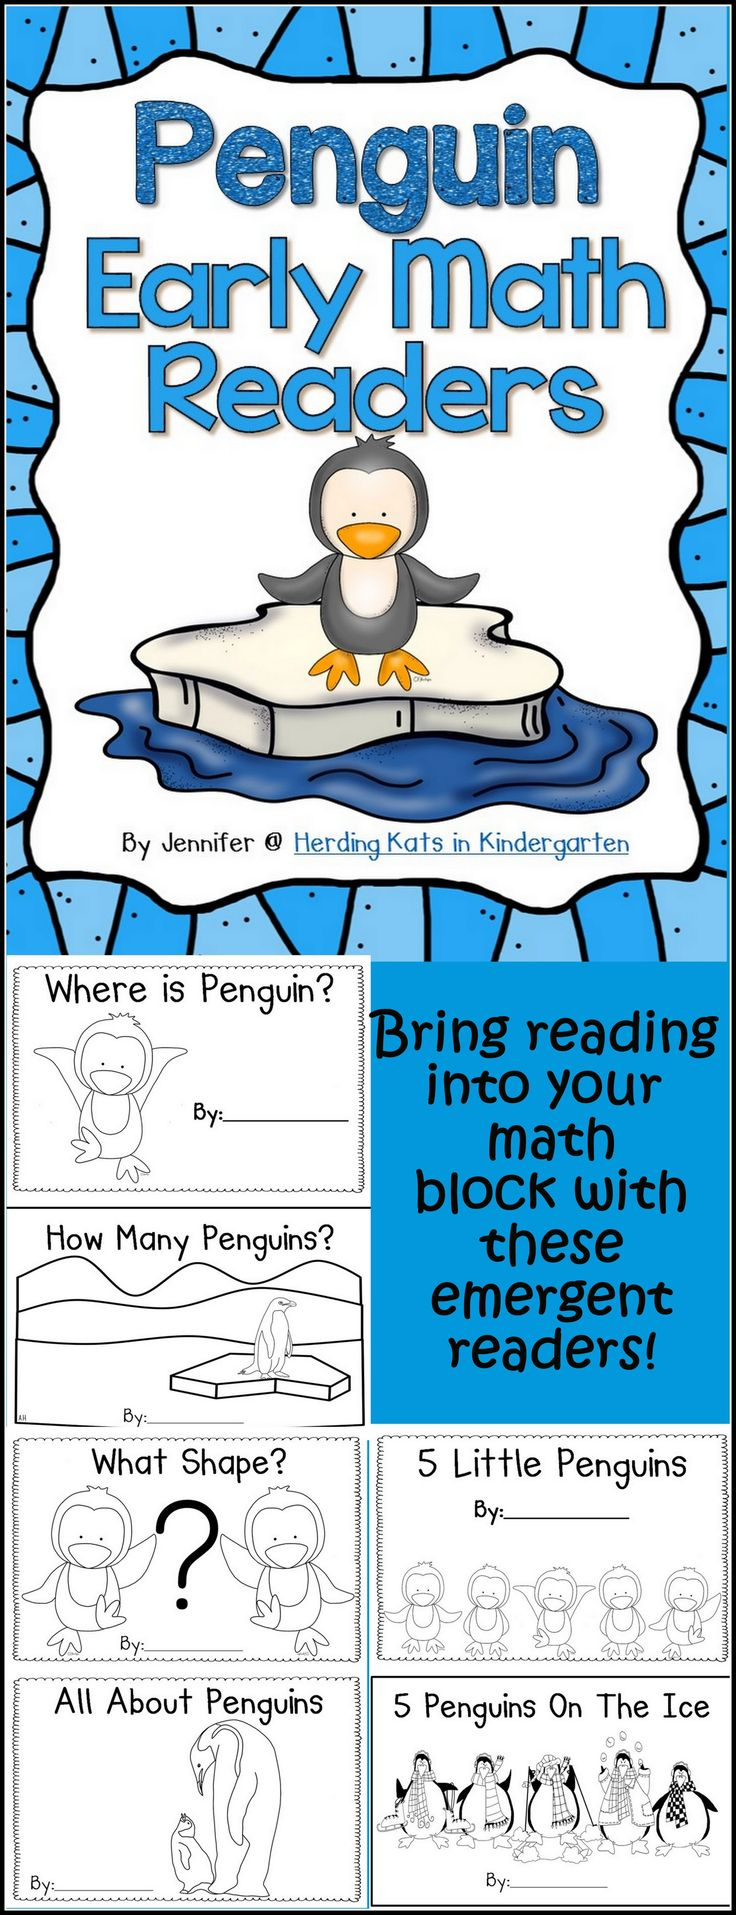 Penguin Early Math Emergent Readers: 5 penguin themed readers with math components! Incorporate reading into your math block and keep that penguin theme going while covering shapes, number words/numerals, early subtraction, positional words and ordinal numbers!